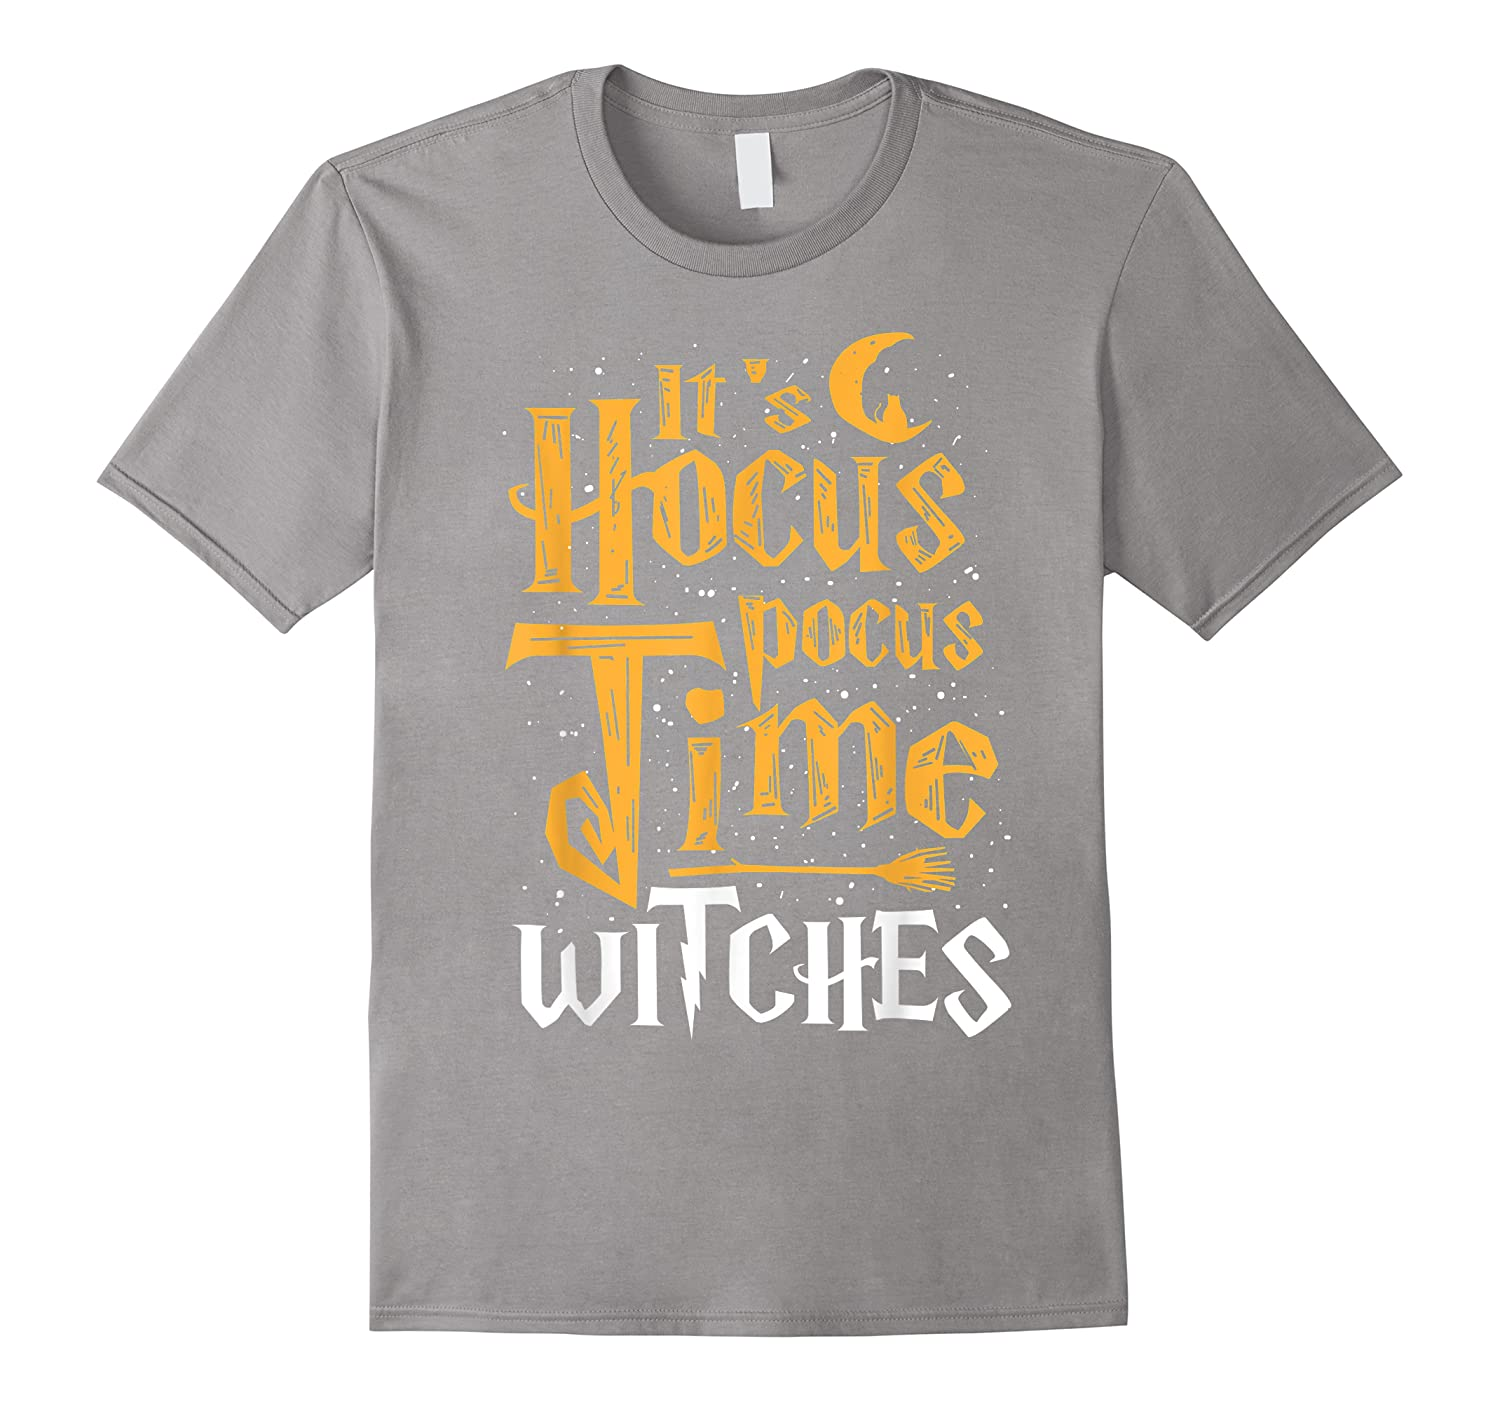 It's Hocus Pocus Time Witches Cute Halloween Gift Shirts